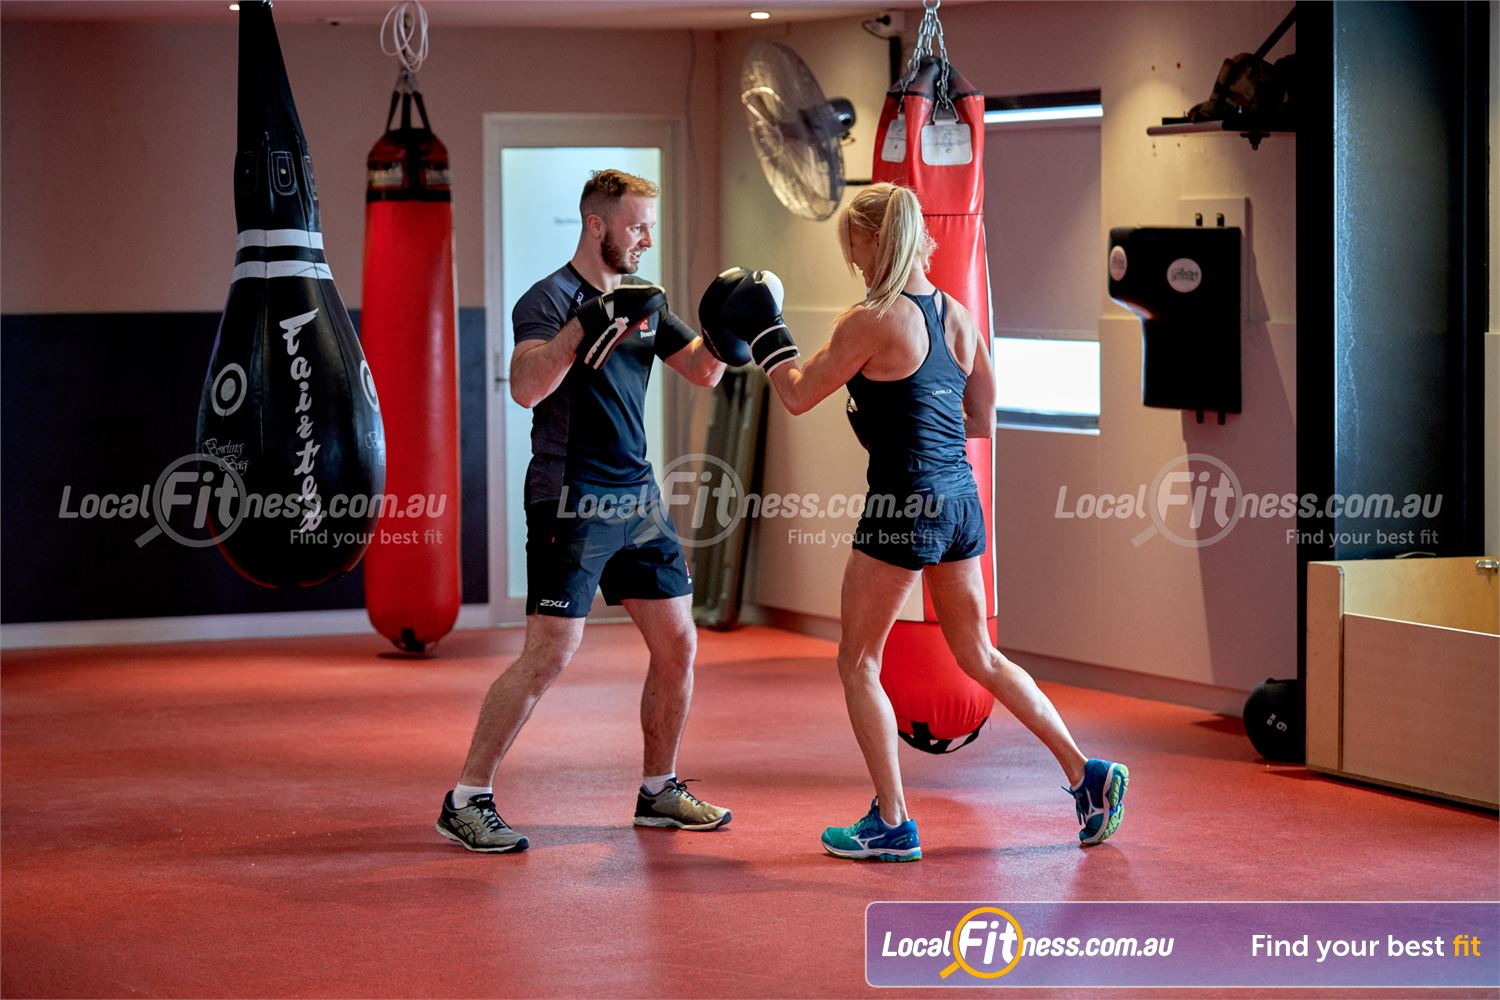 Fitness First Near Forrest Get a cardio boxing workout at Fitness First Deakin gym.